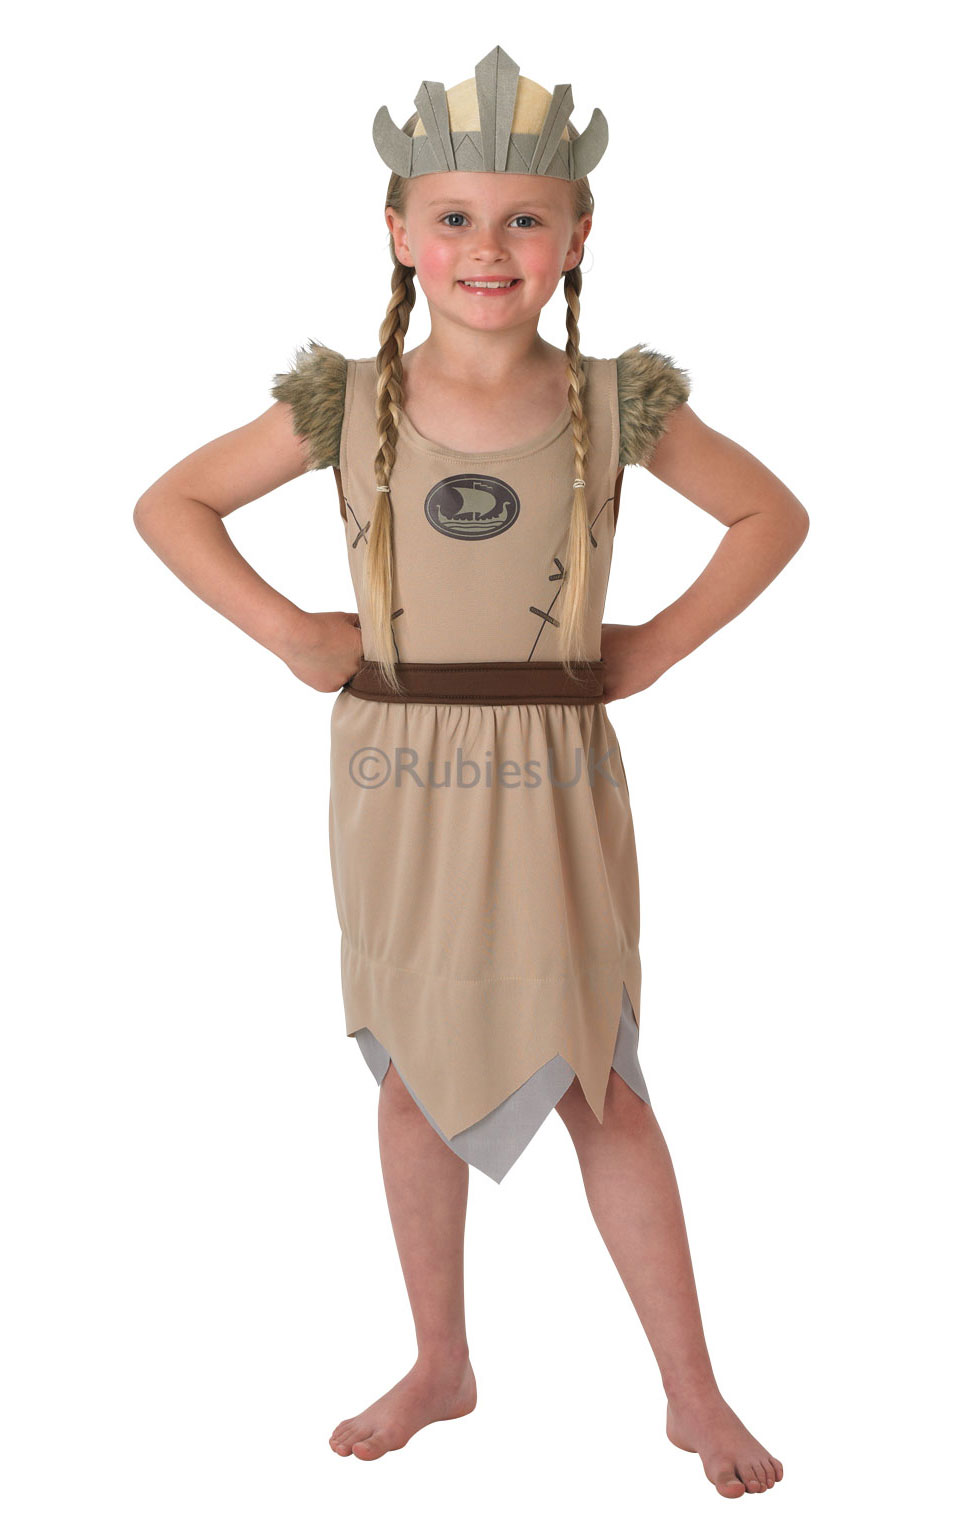 CHILDS VIKING COSTUME WITH HELMET SAXON WARRIOR BOOK WEEK FANCY DRESS OUTFIT